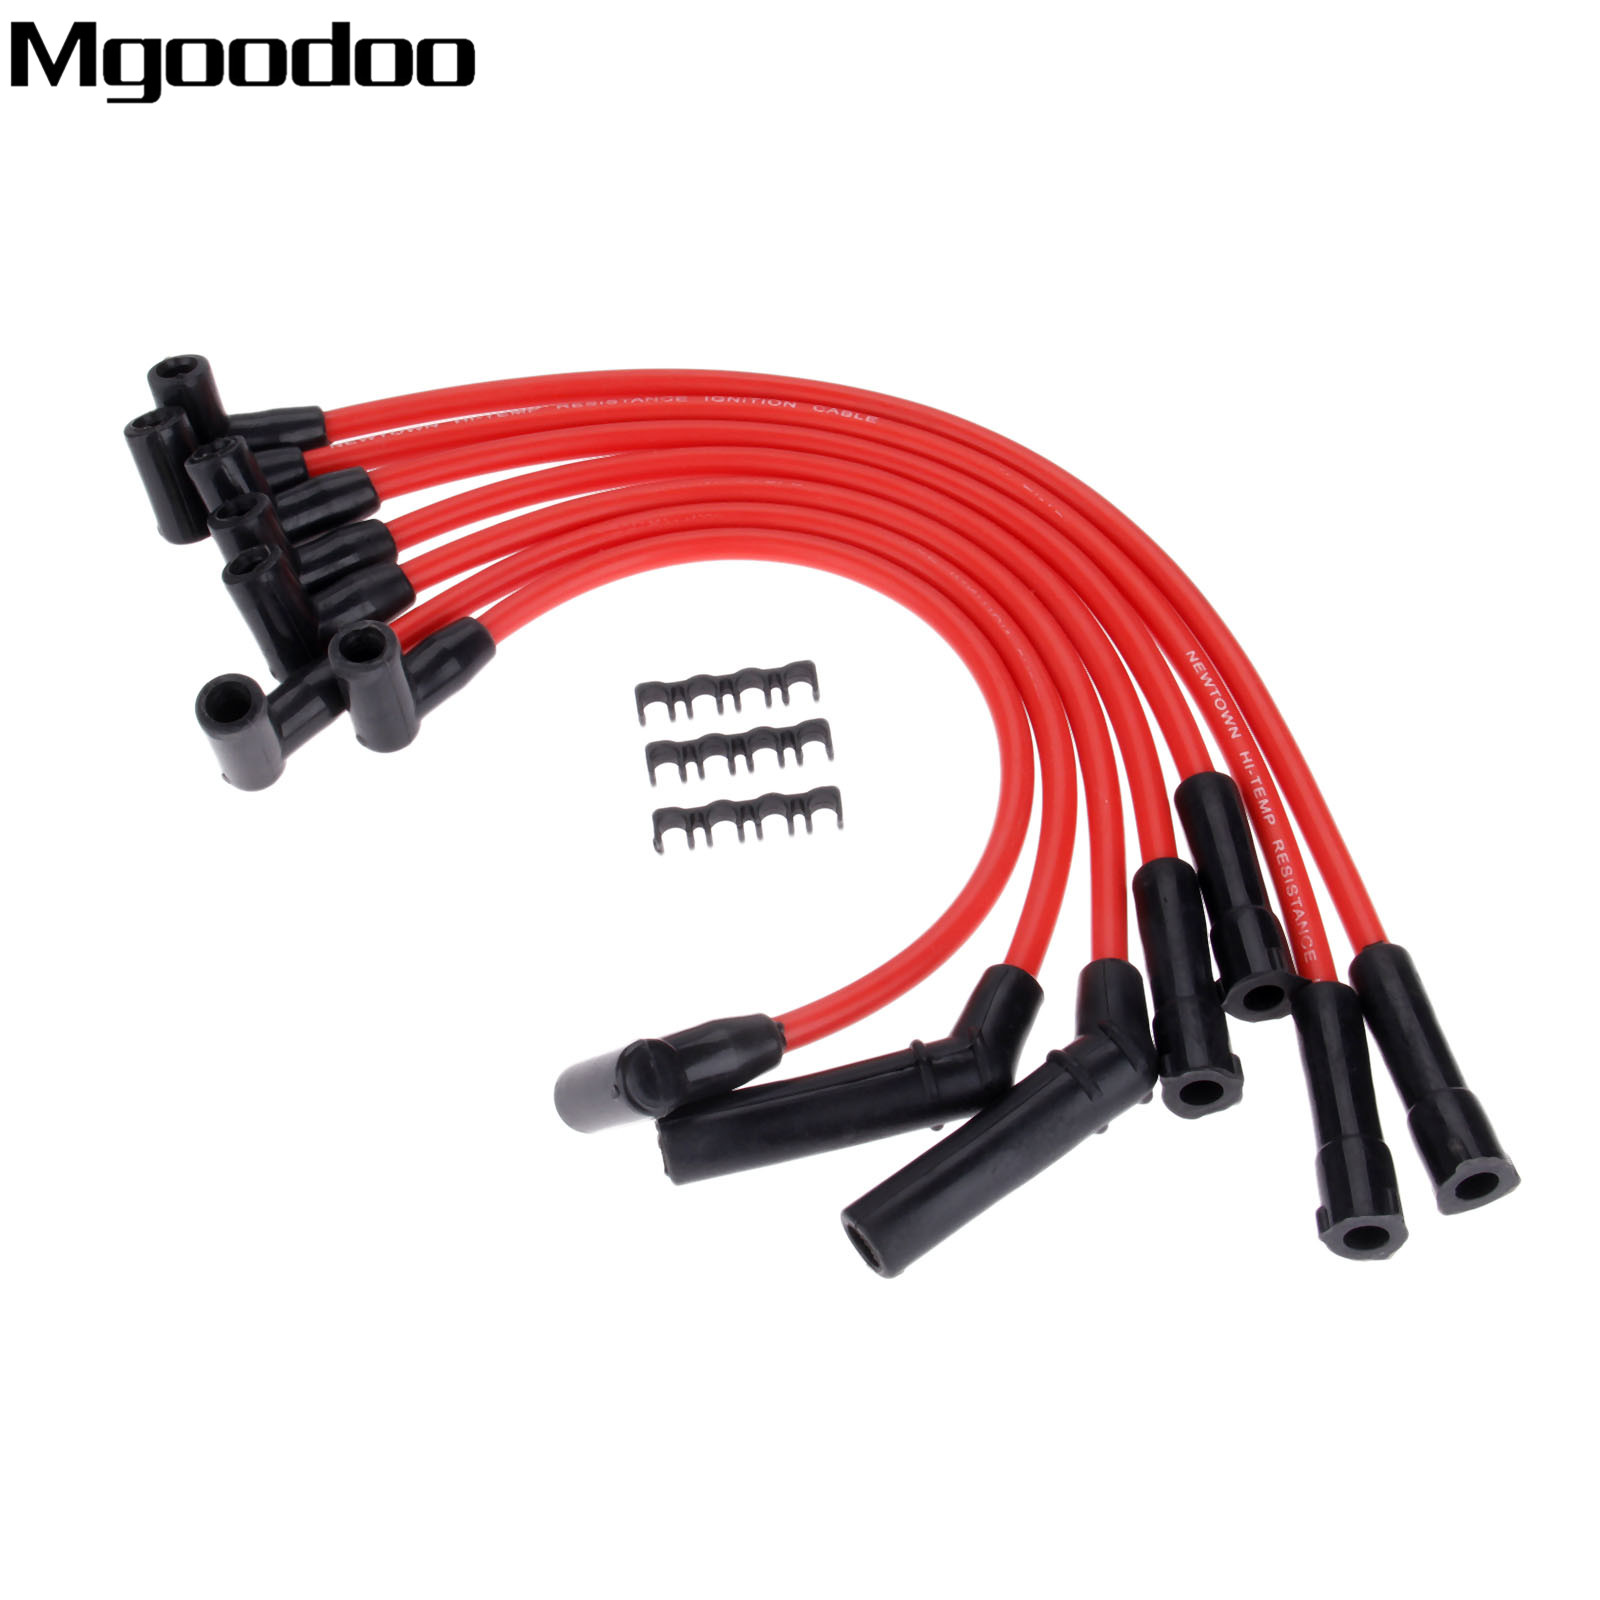 7Pcs Ignition Cable Spark Plug Wire 8.5mm Clips Fittment For Jeep Grand Cherokee Wagoneer Cherokee Briarwood Wrangler Comanche